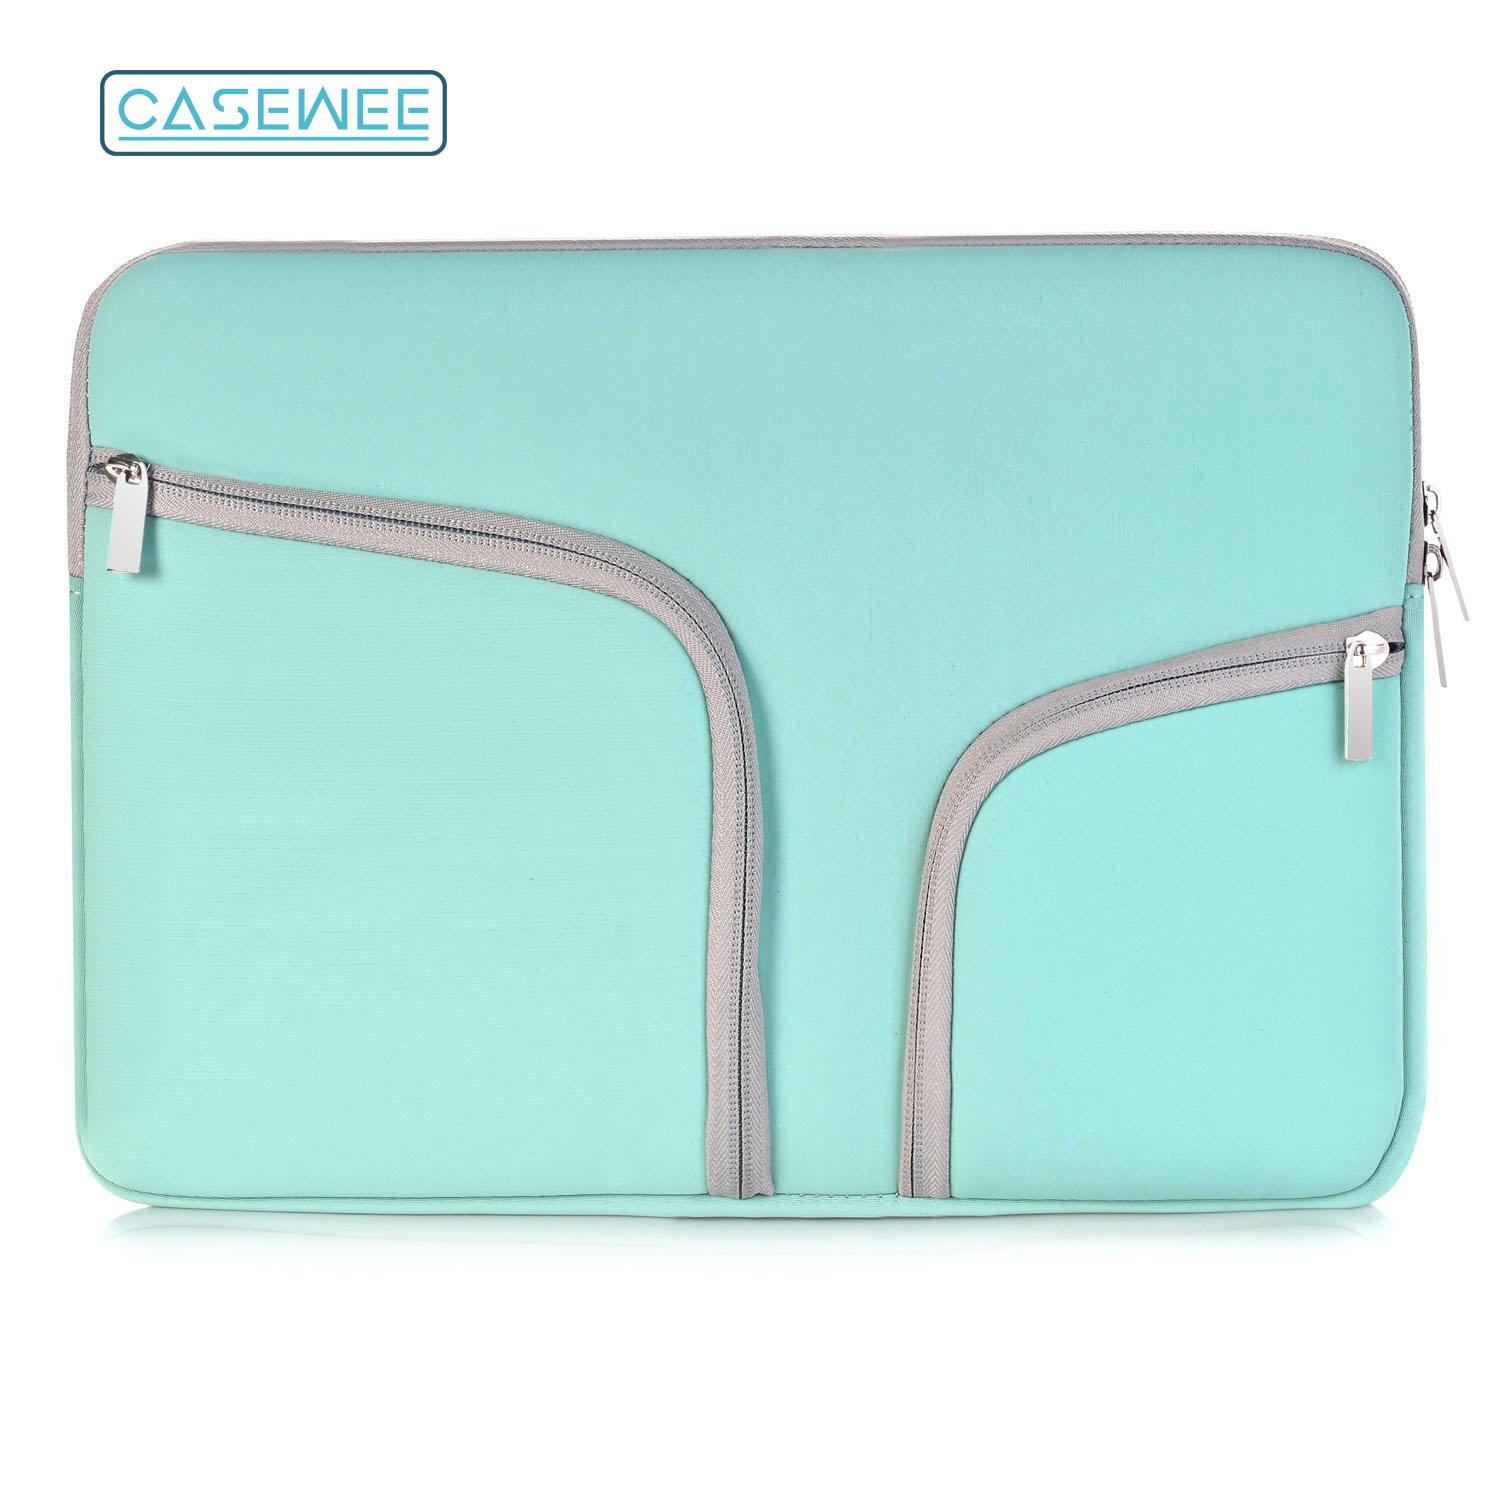 Casewee New Neoprene Laptop Sleeve Laptop Bags